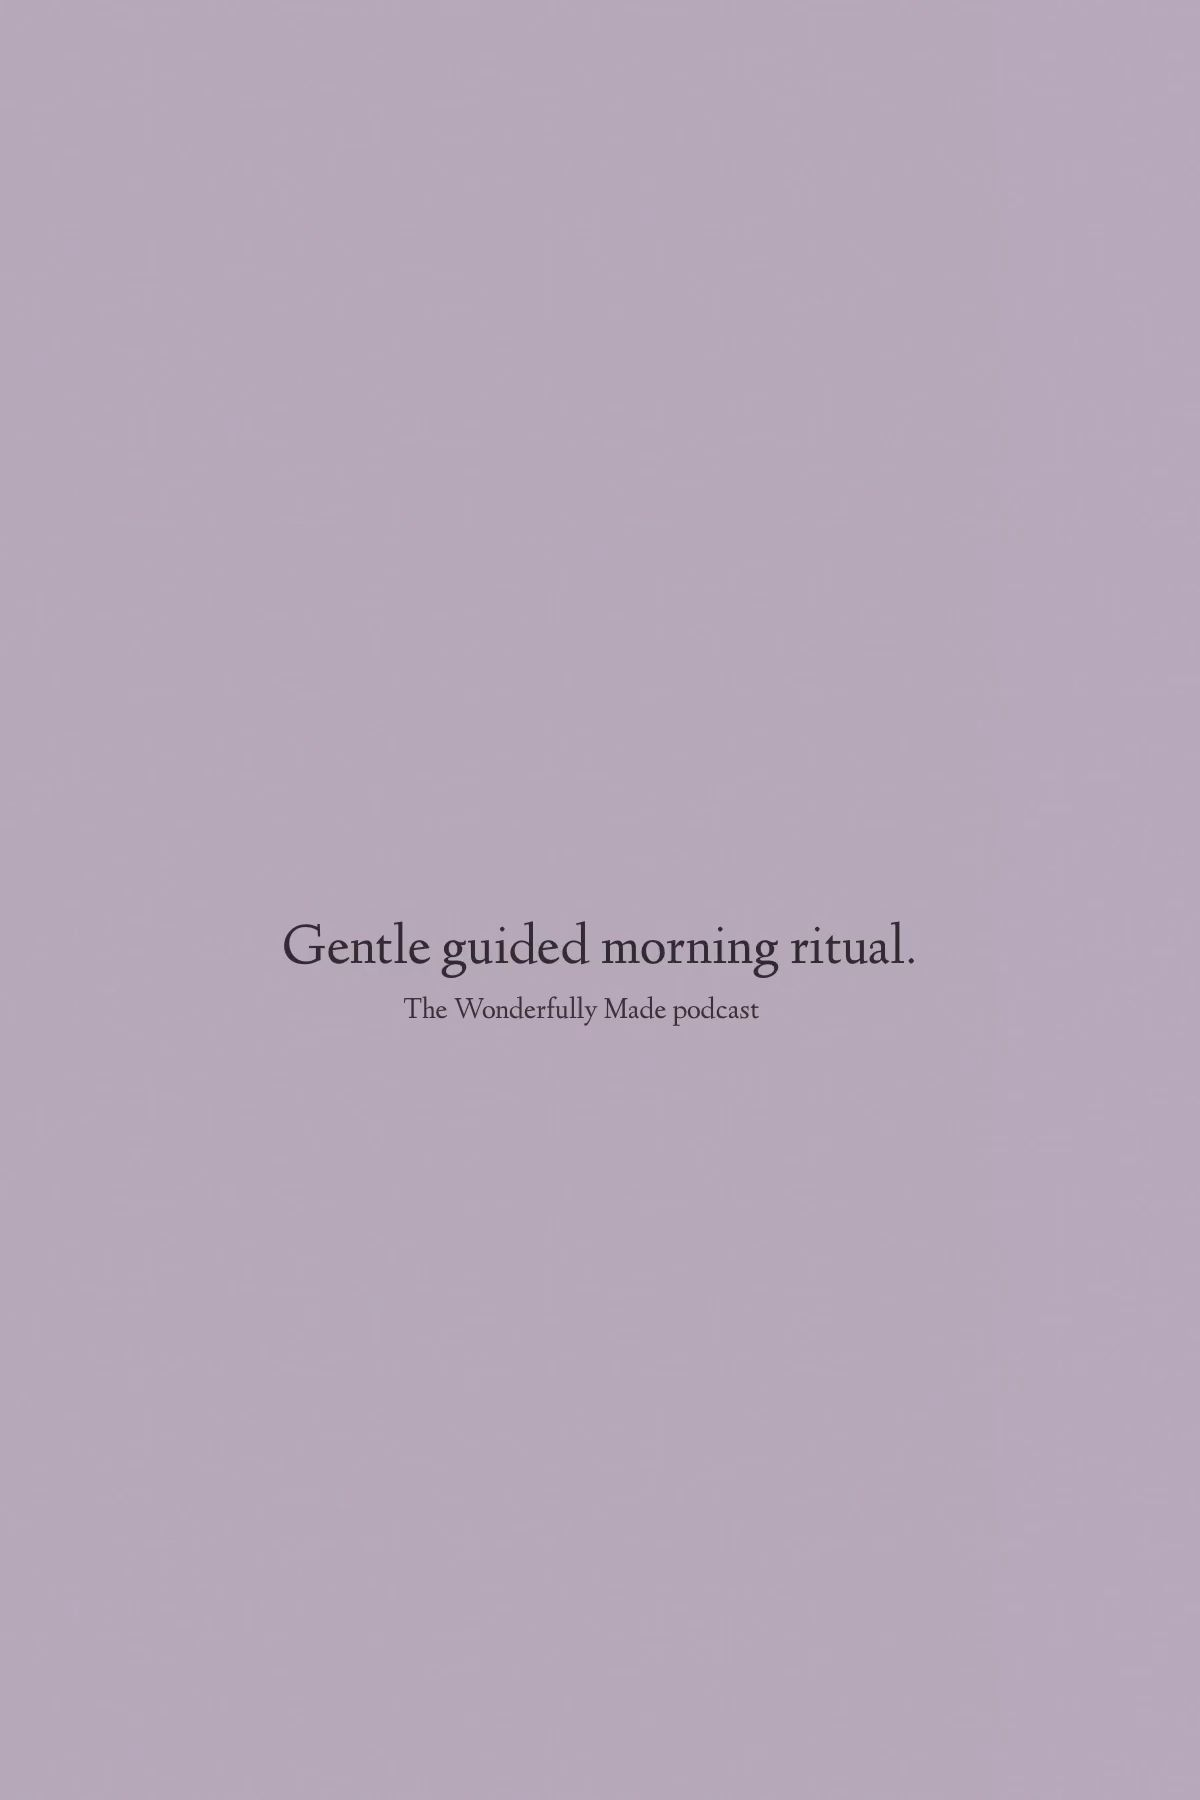 Gentle guided morning ritual (full episode)